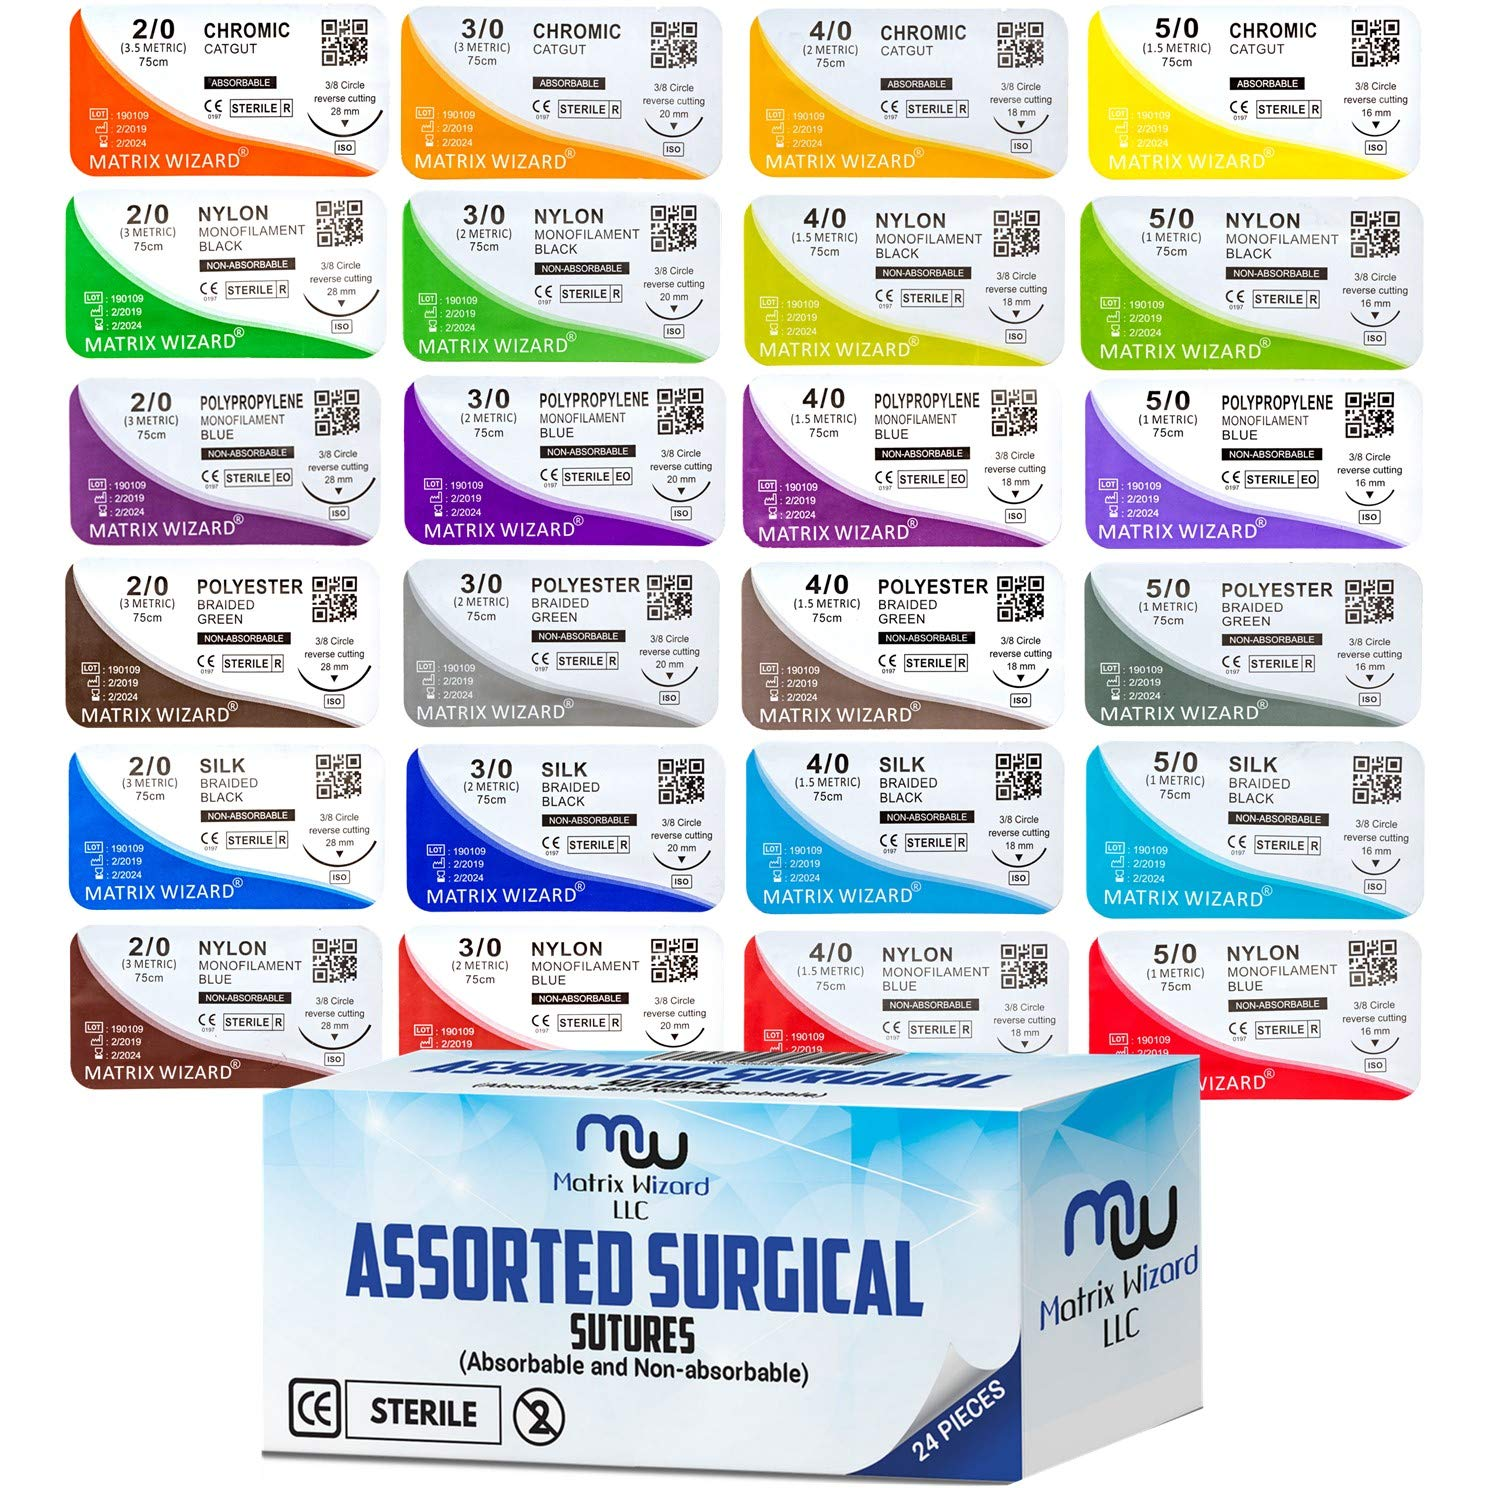 Mixed Sutures Thread with Needle (Absorbable: Chromic Catgut; Non-Absorbable: Nylon, Silk, Polyester, Polypropylene) - Surgical Wound Practice Kit, Emergency First Aid Demo (2-0, 3-0, 4-0, 5-0) 24Pk by Matrix Wizard (Image #7)